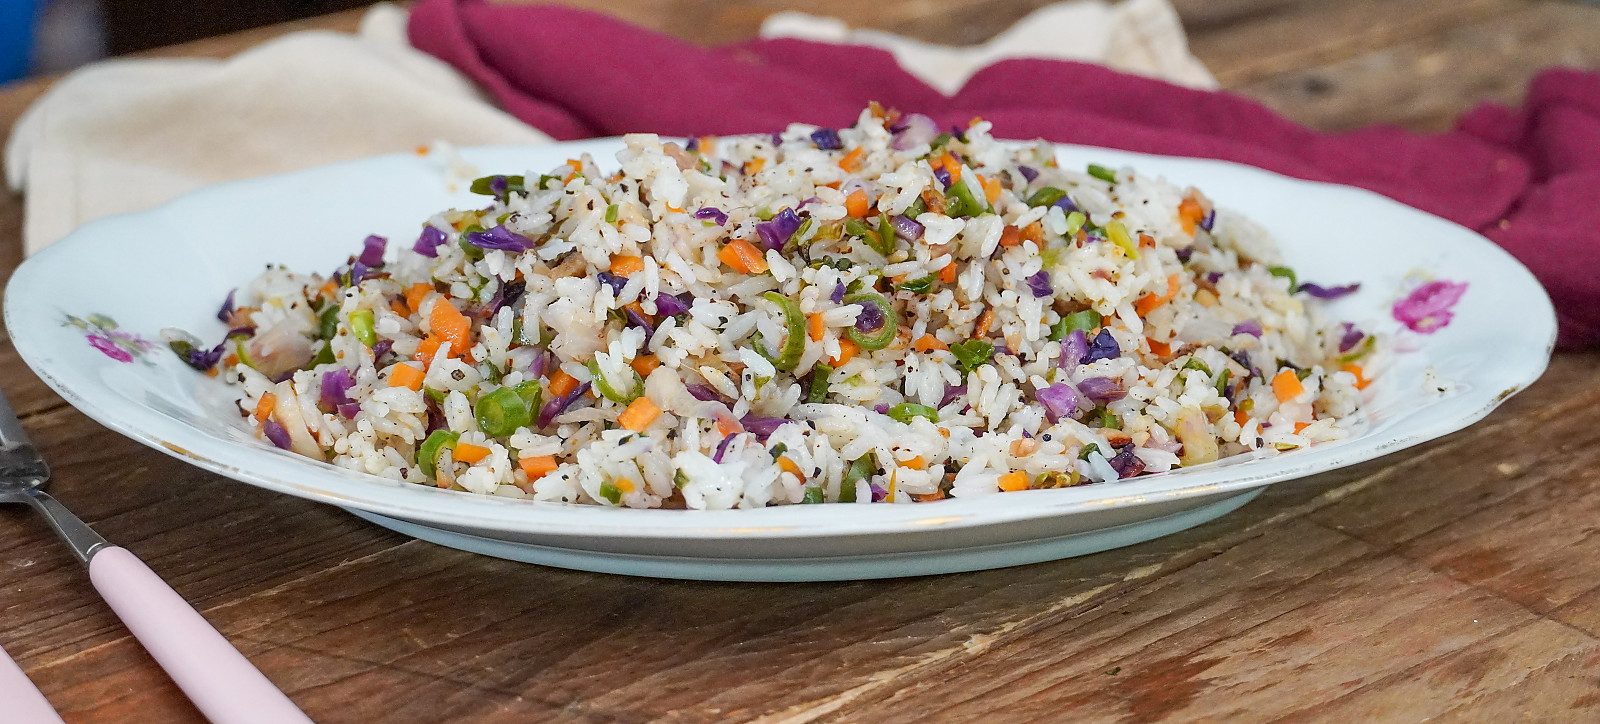 Chinese Vegetable Fried Rice With Red Cabbage/ Purple Cabbage